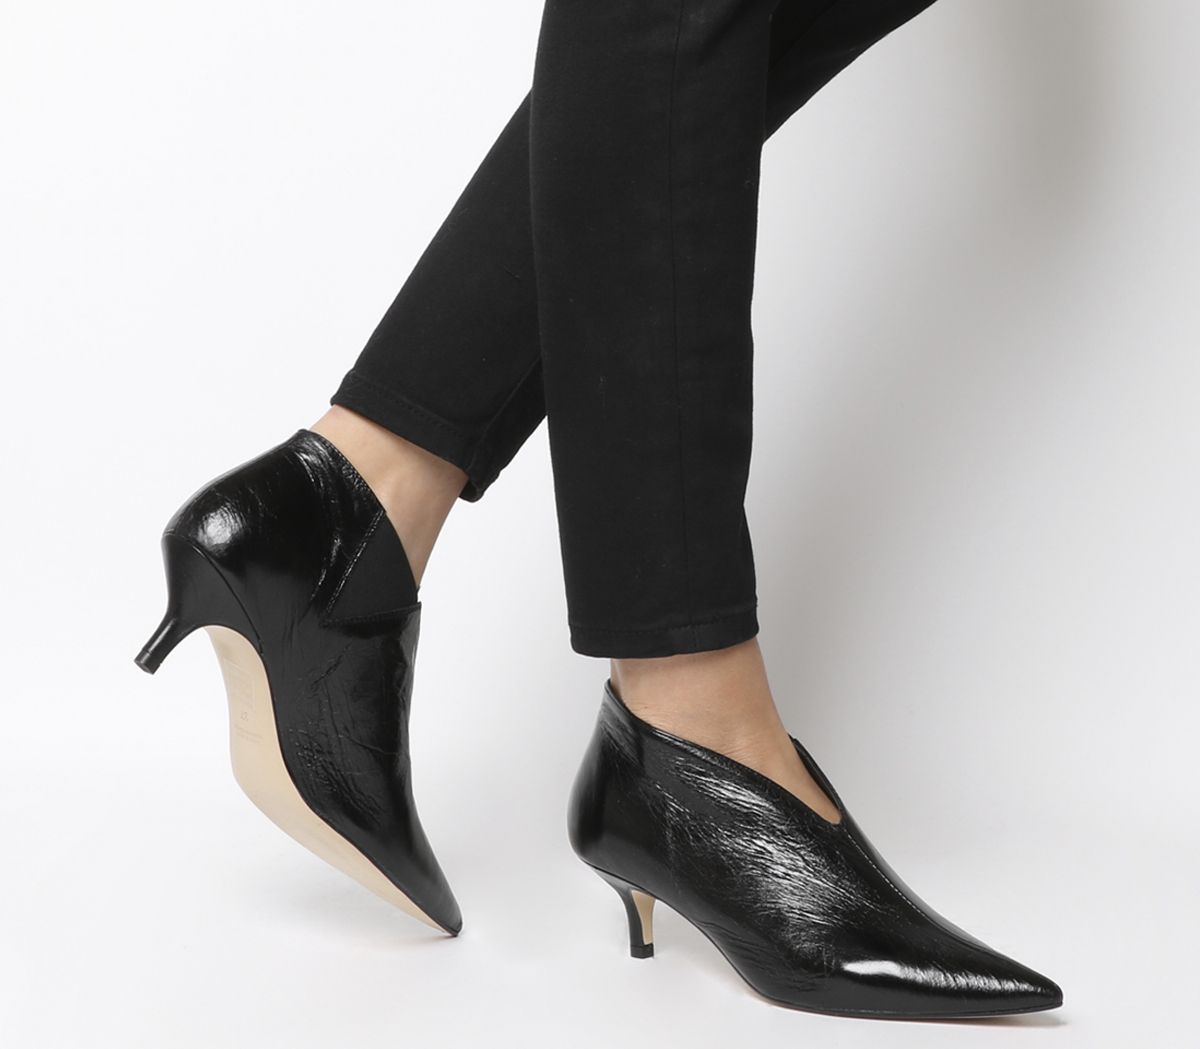 78a01917aa97 Office Me Low Shoe Boots Black Leather - Mid Heels